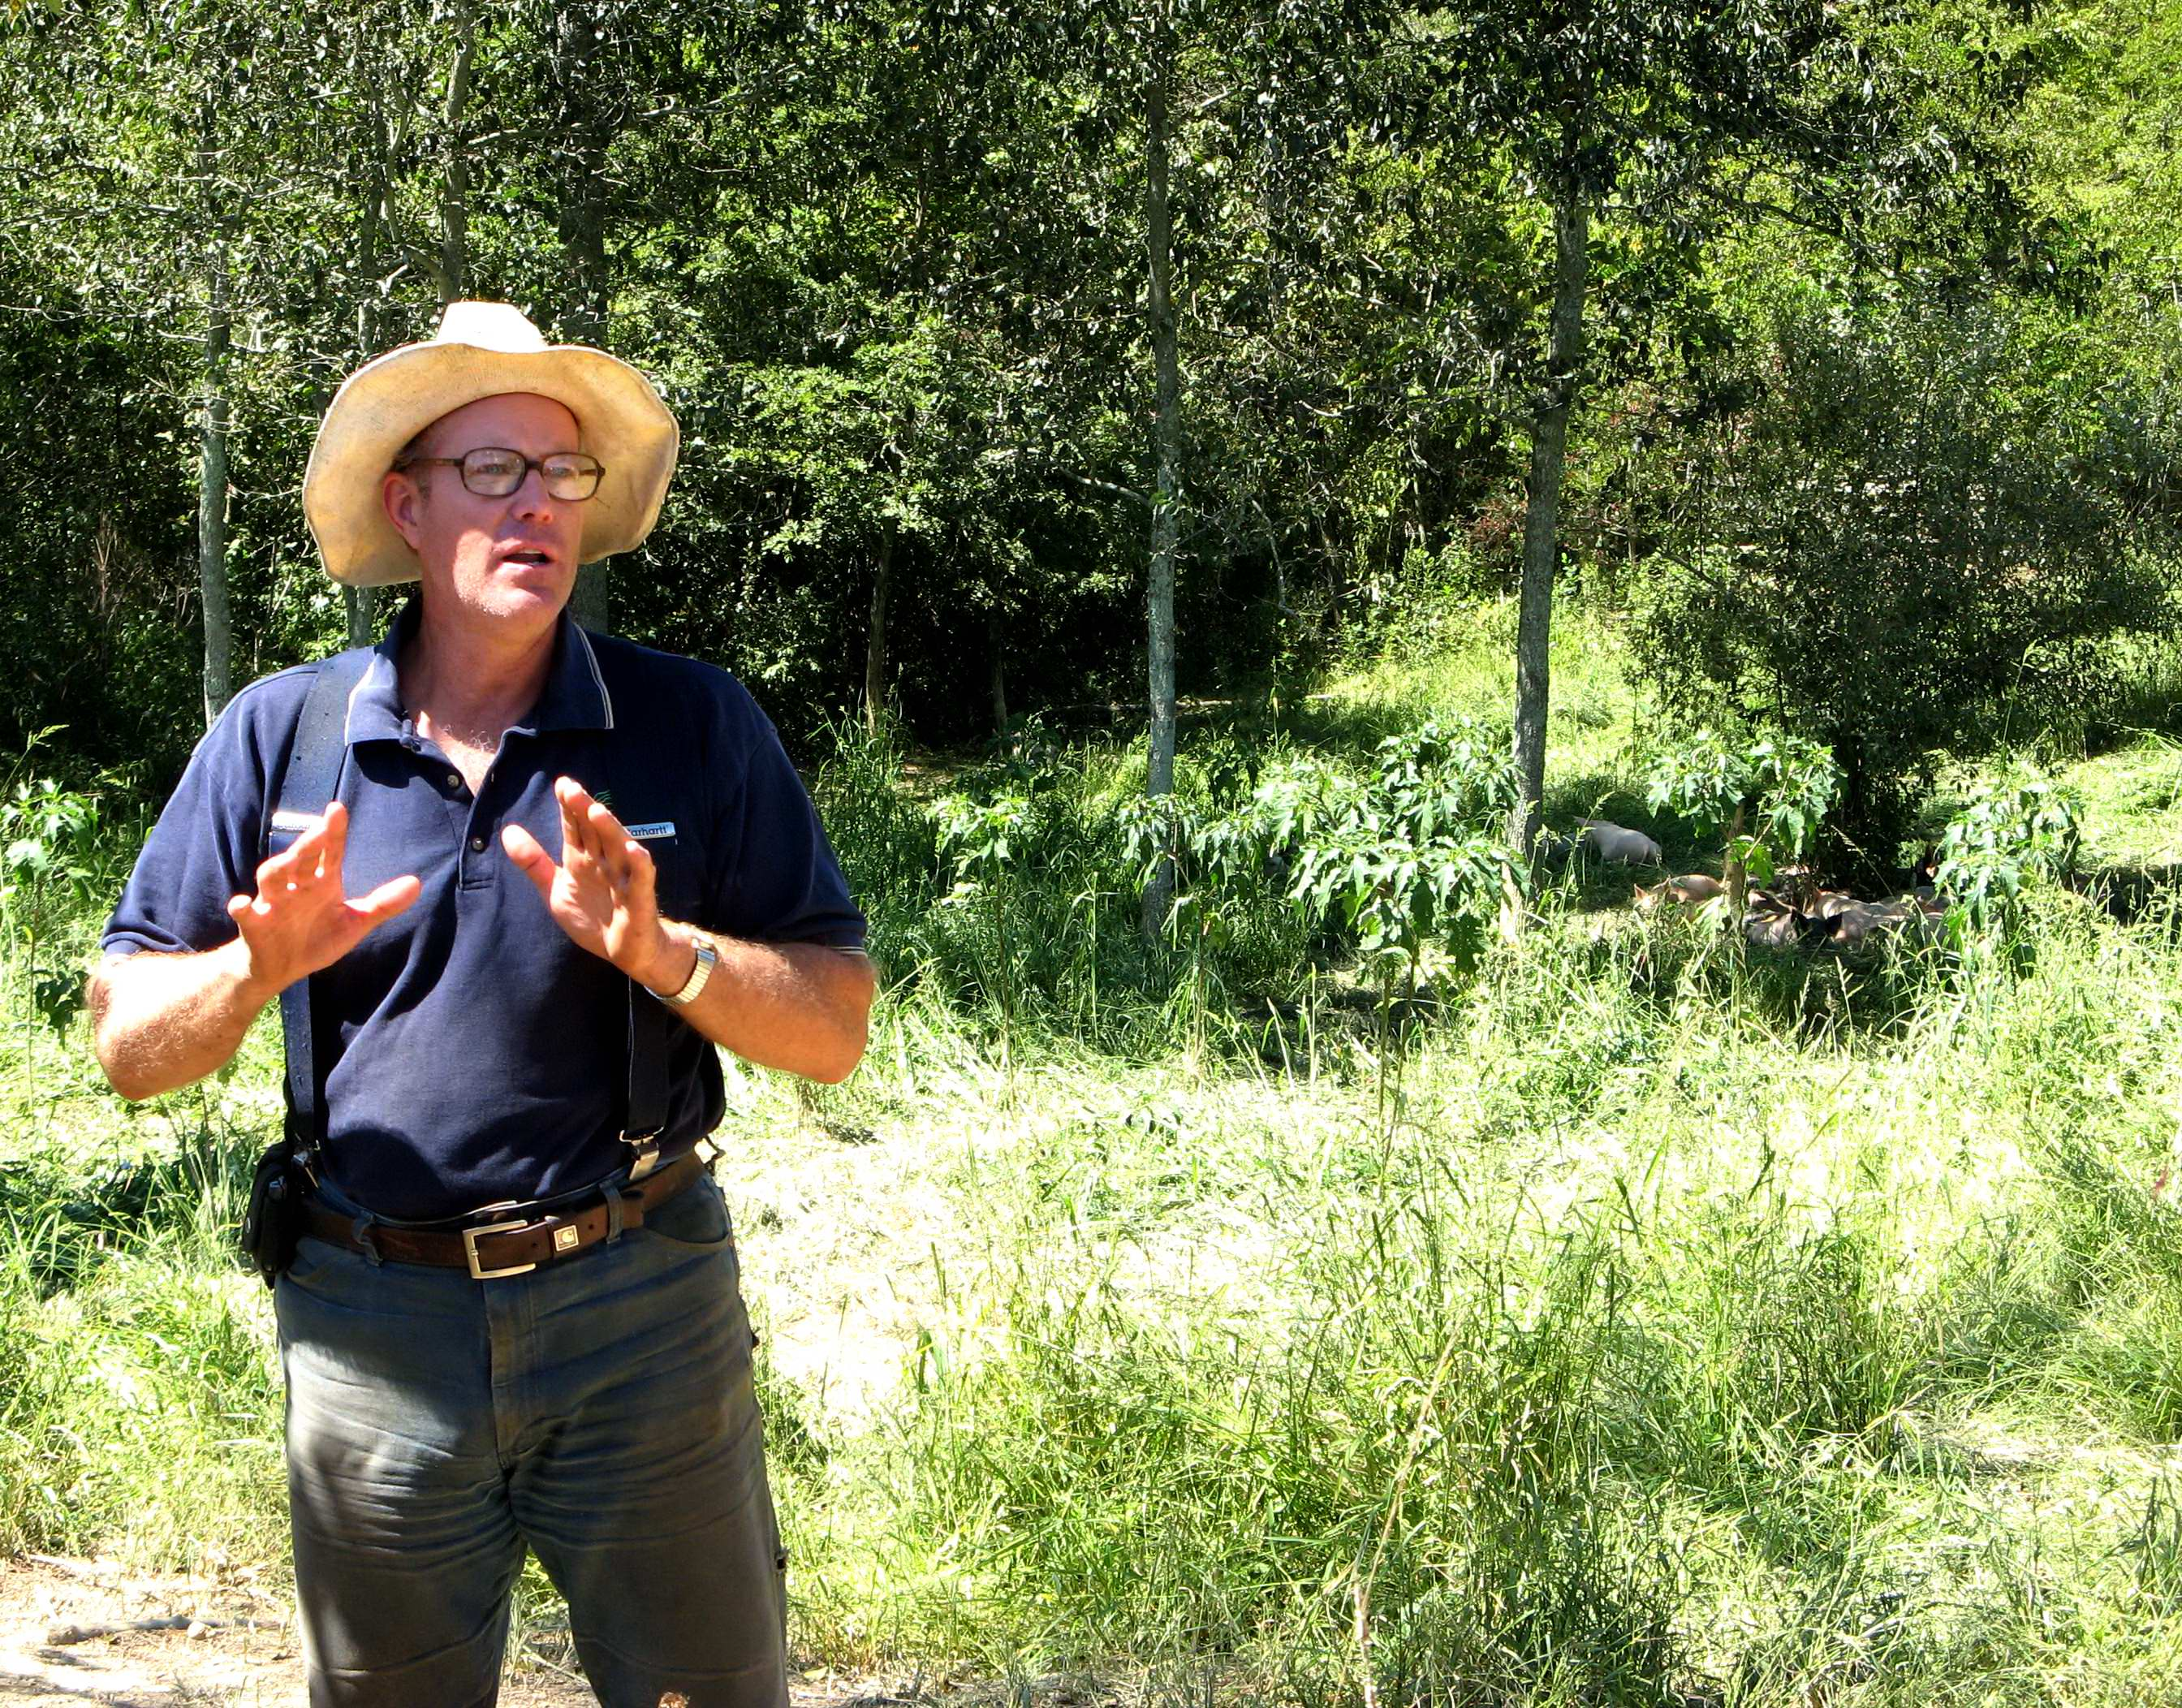 Joel Salatin of Polyface Farm, and his pigs